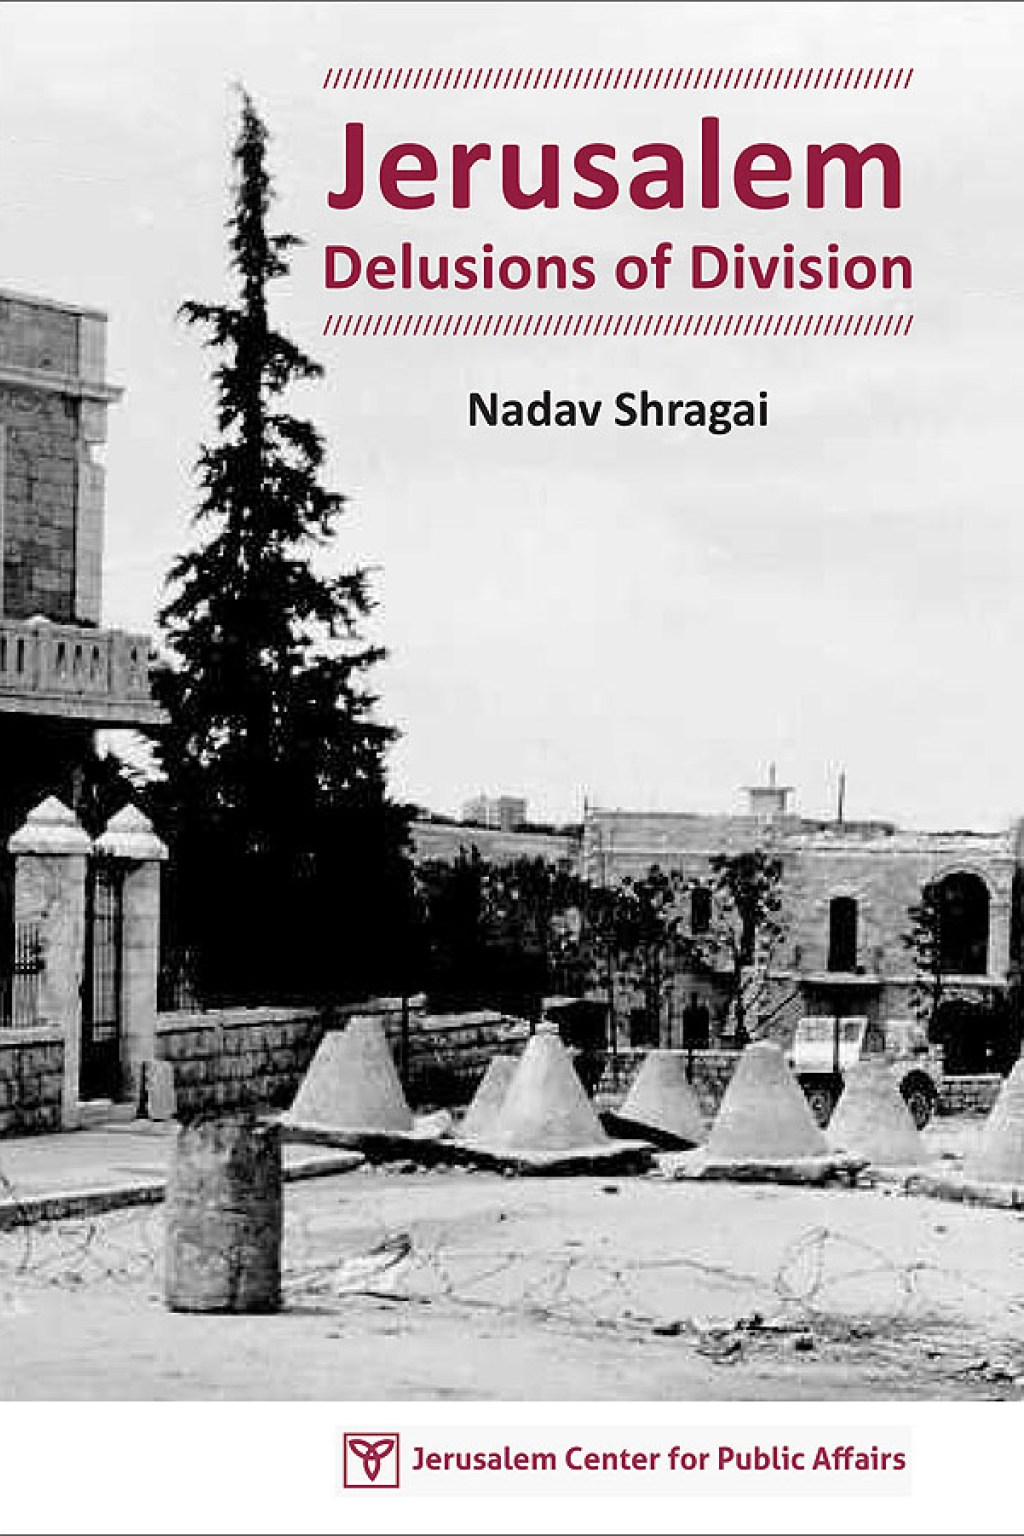 Jerusalem: Delusions of Division